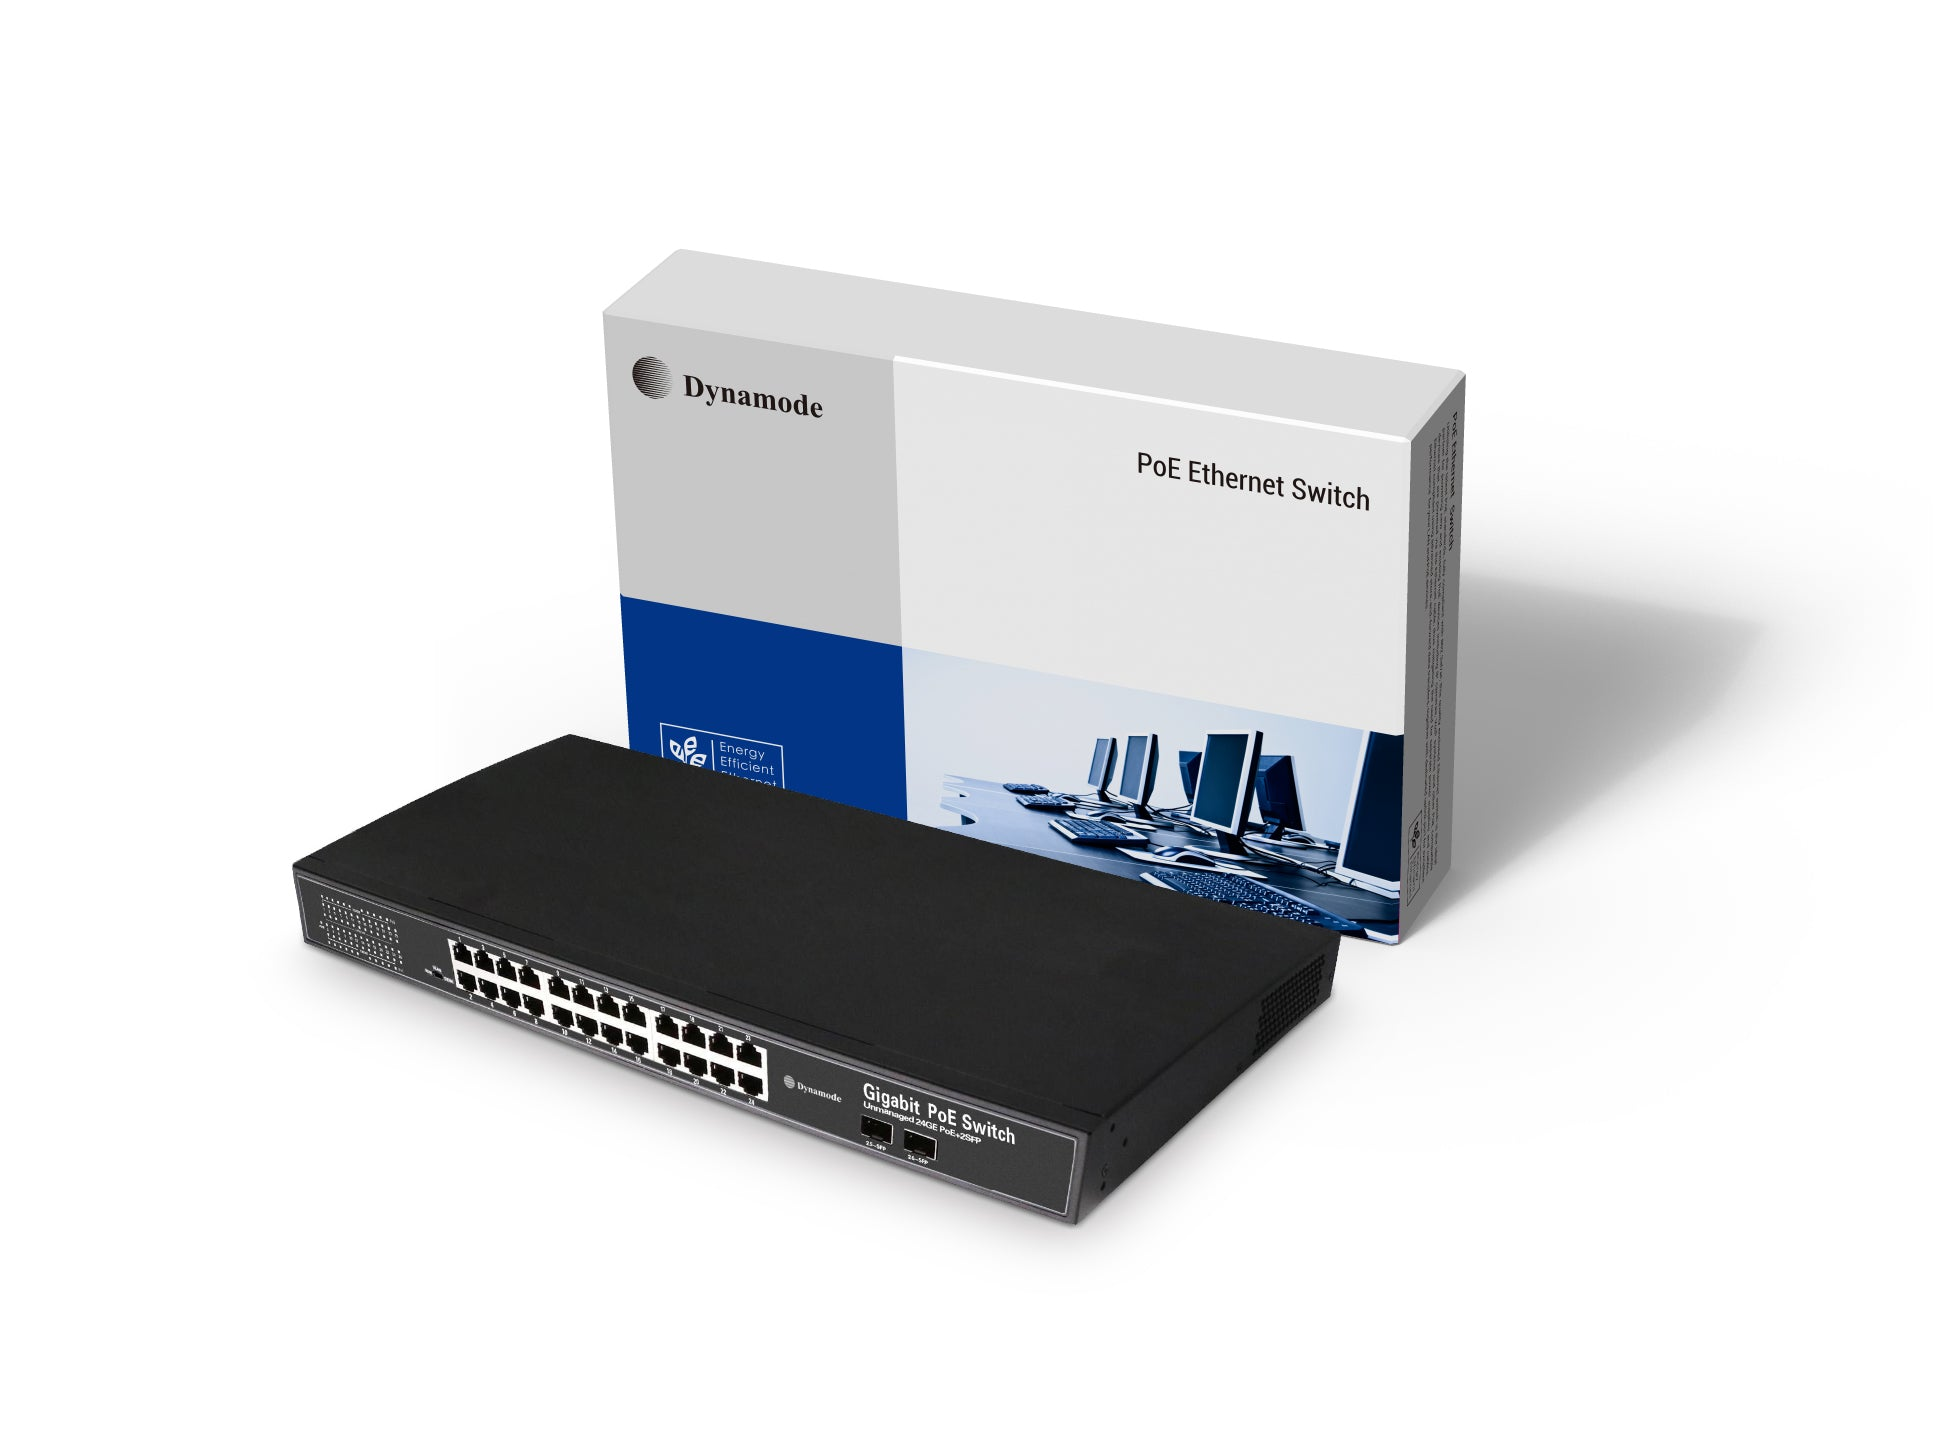 24 Port 10/100/1000 Gigabit Rackmount PoE Switch +2 SFP Uplink (1U)